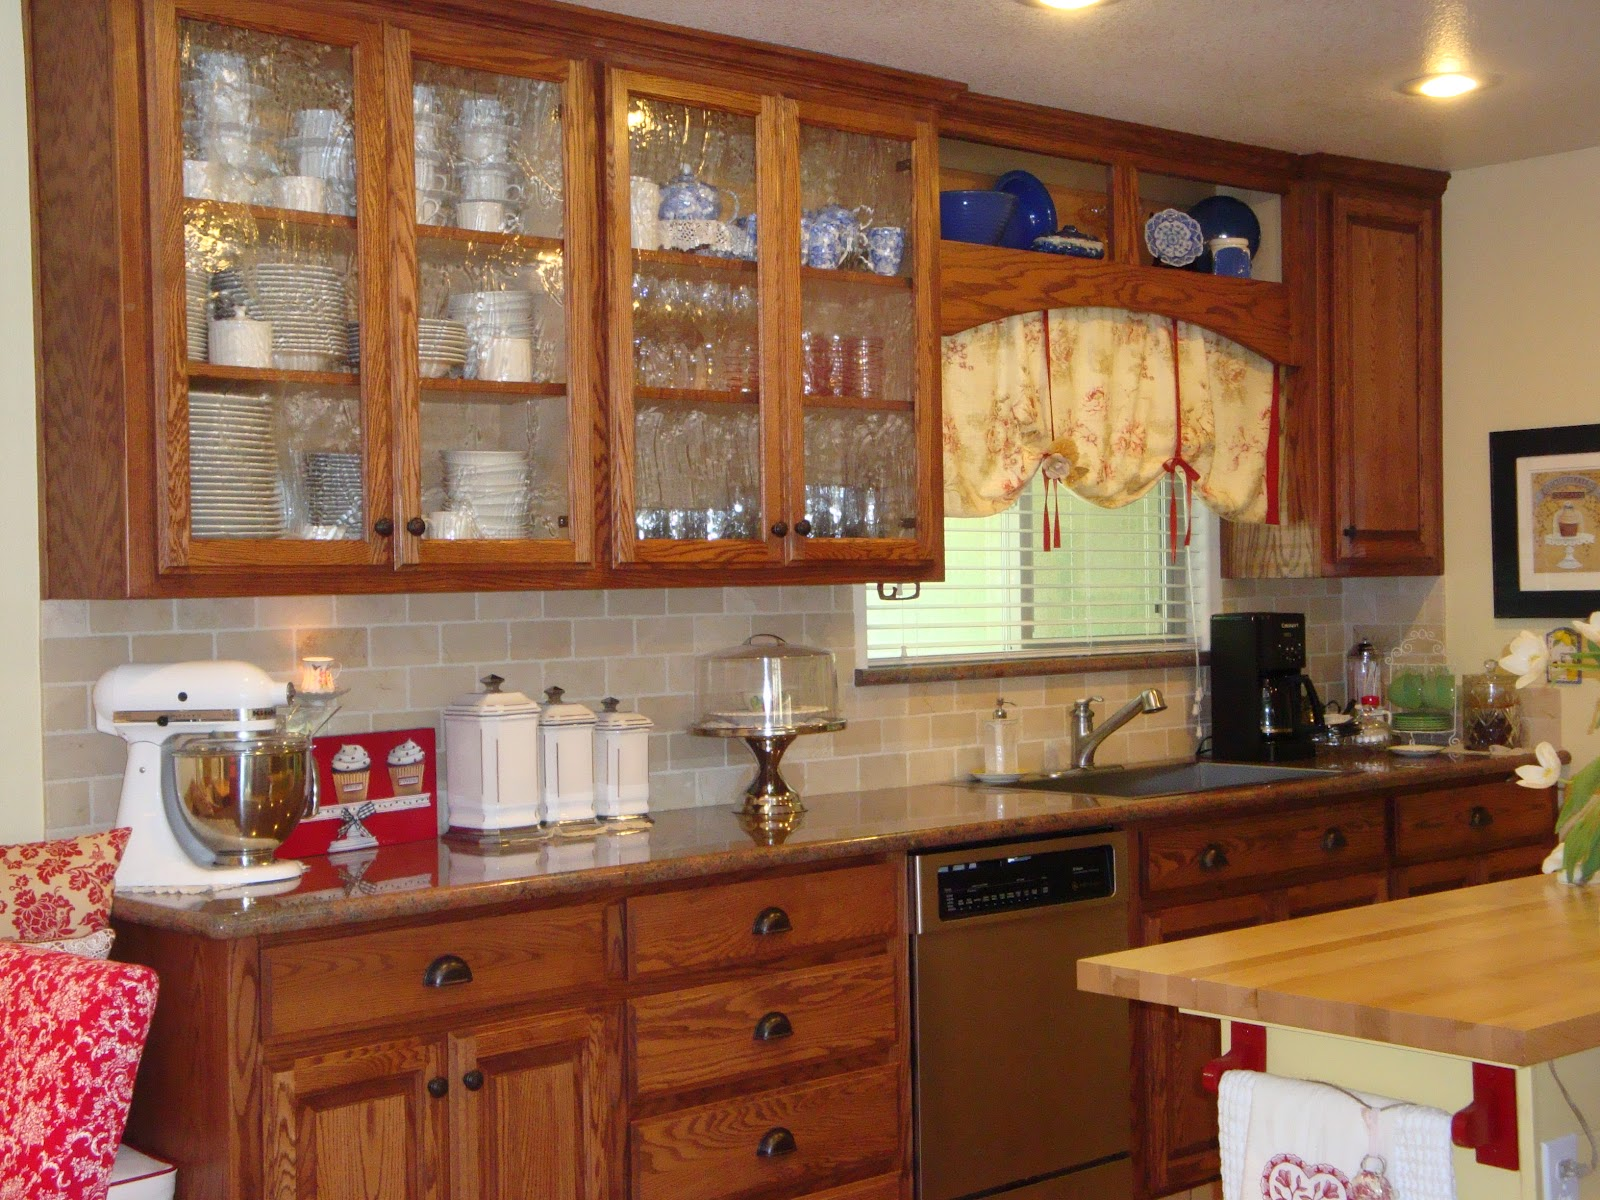 Glass For Kitchen Cabinets Small Commercial Cost Home Is Where The Heart Seeded In